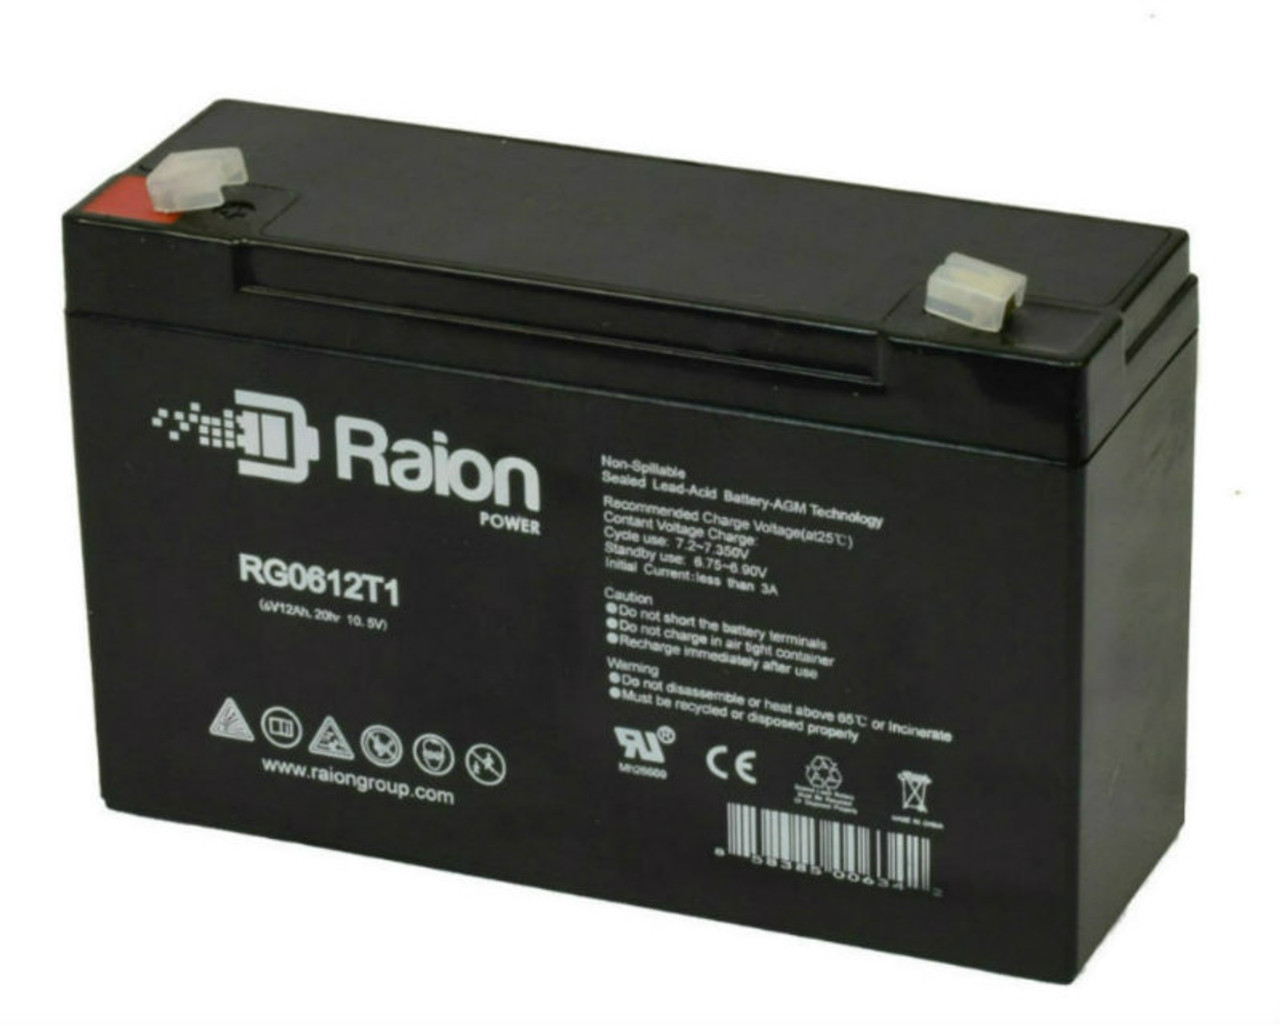 Raion Power RG06120T1 Replacement Battery Pack for Elan ST3 emergency light